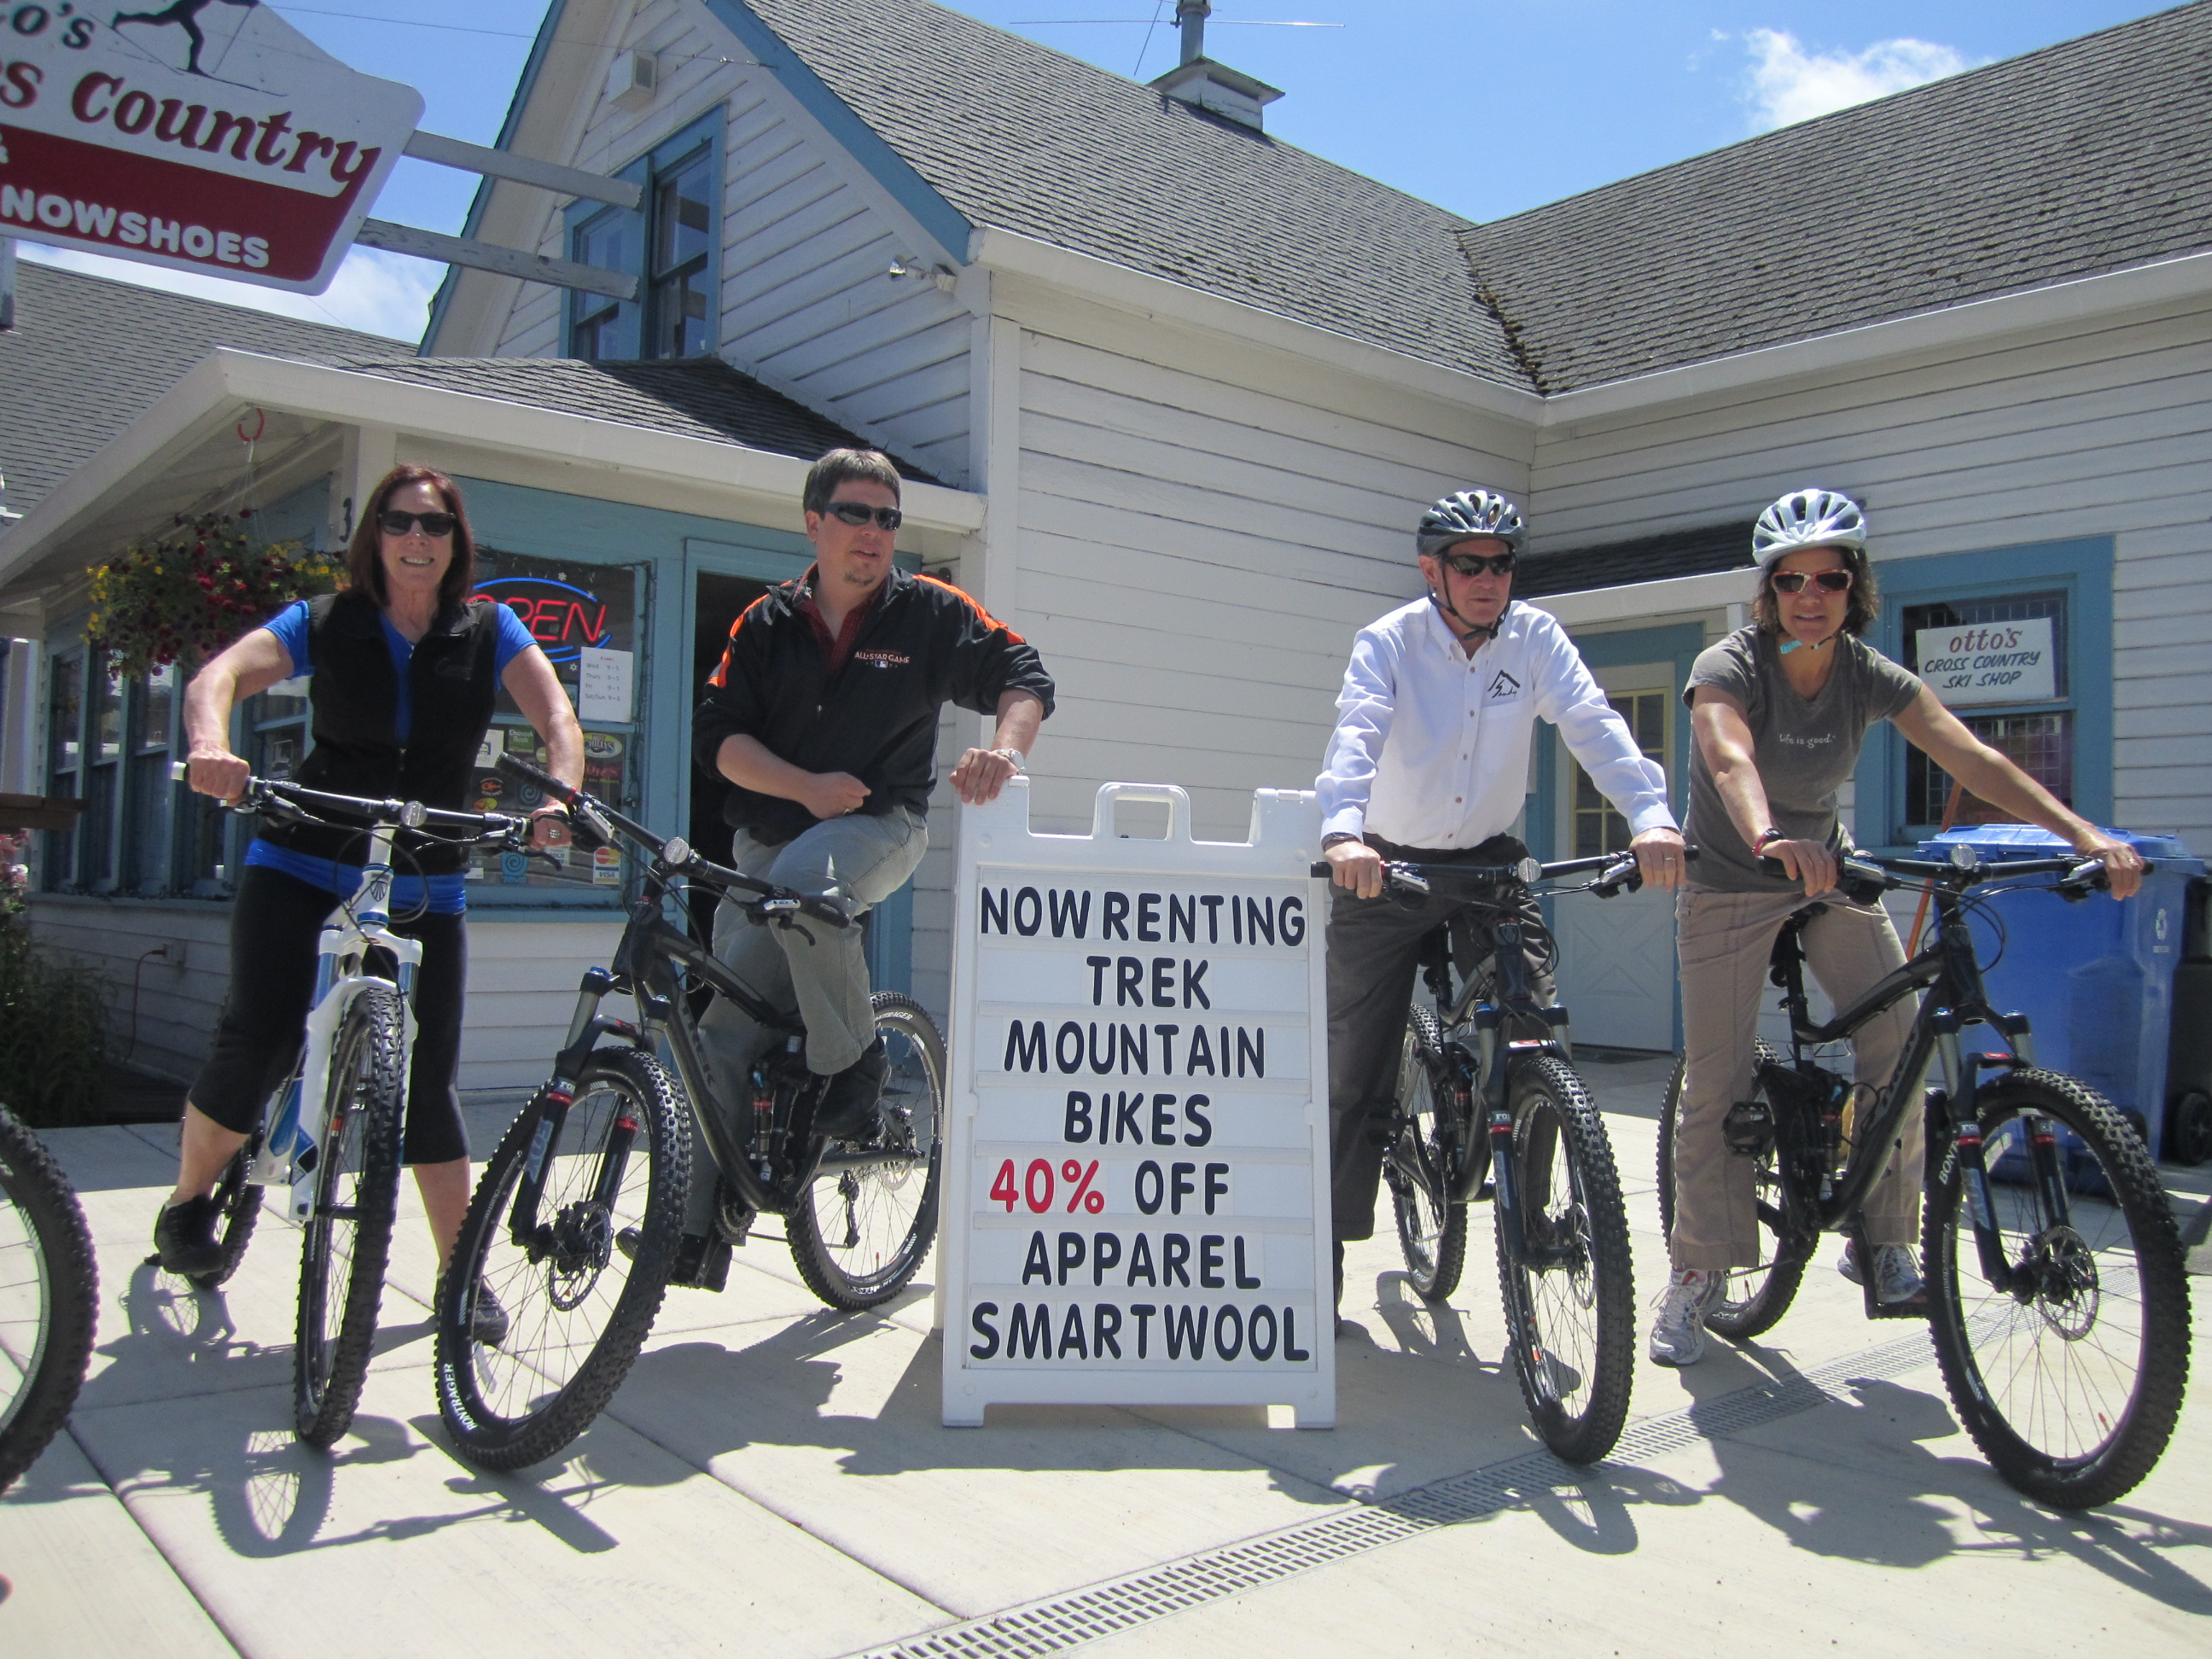 Left to Right. Andreanne Rode, owner of Otto's, Dave synder, Scott Lazenby and Carol Cohen from the City of Sandy who supported us in our Quest to bring mountain bikes to Sandy.